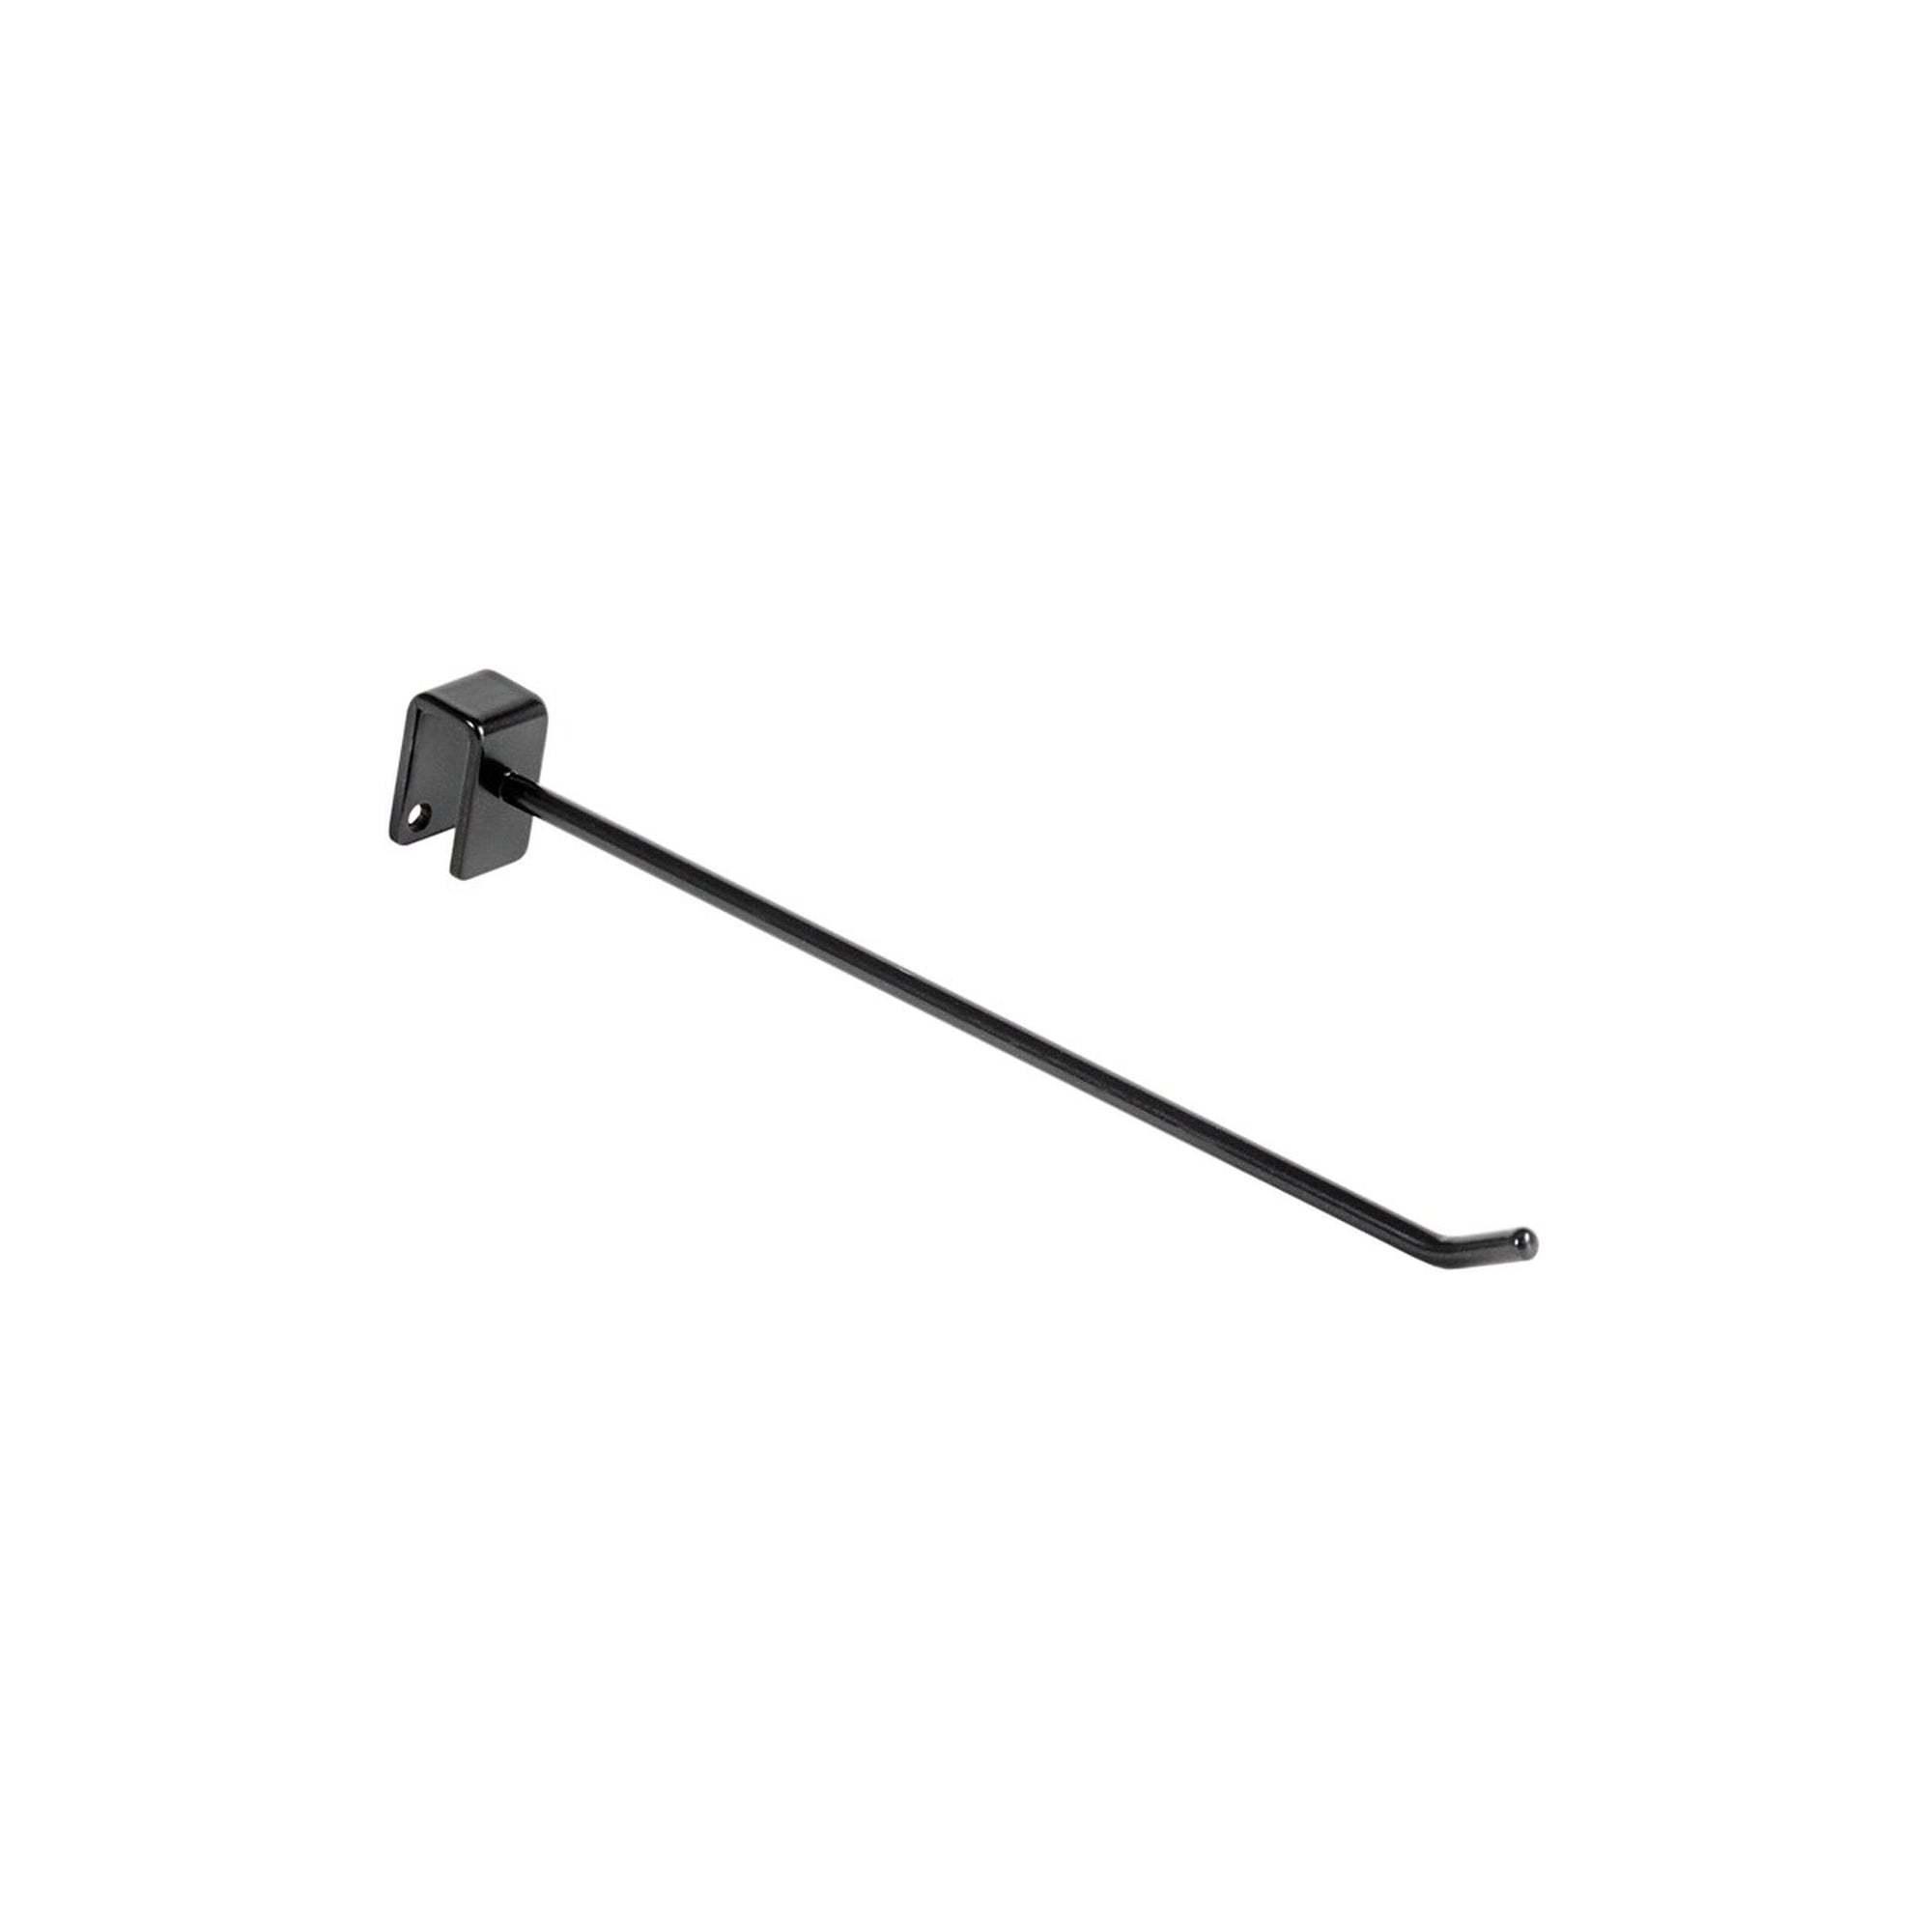 MAXe backrail hook - 250mm D x 6mm DIA wire (E4925)